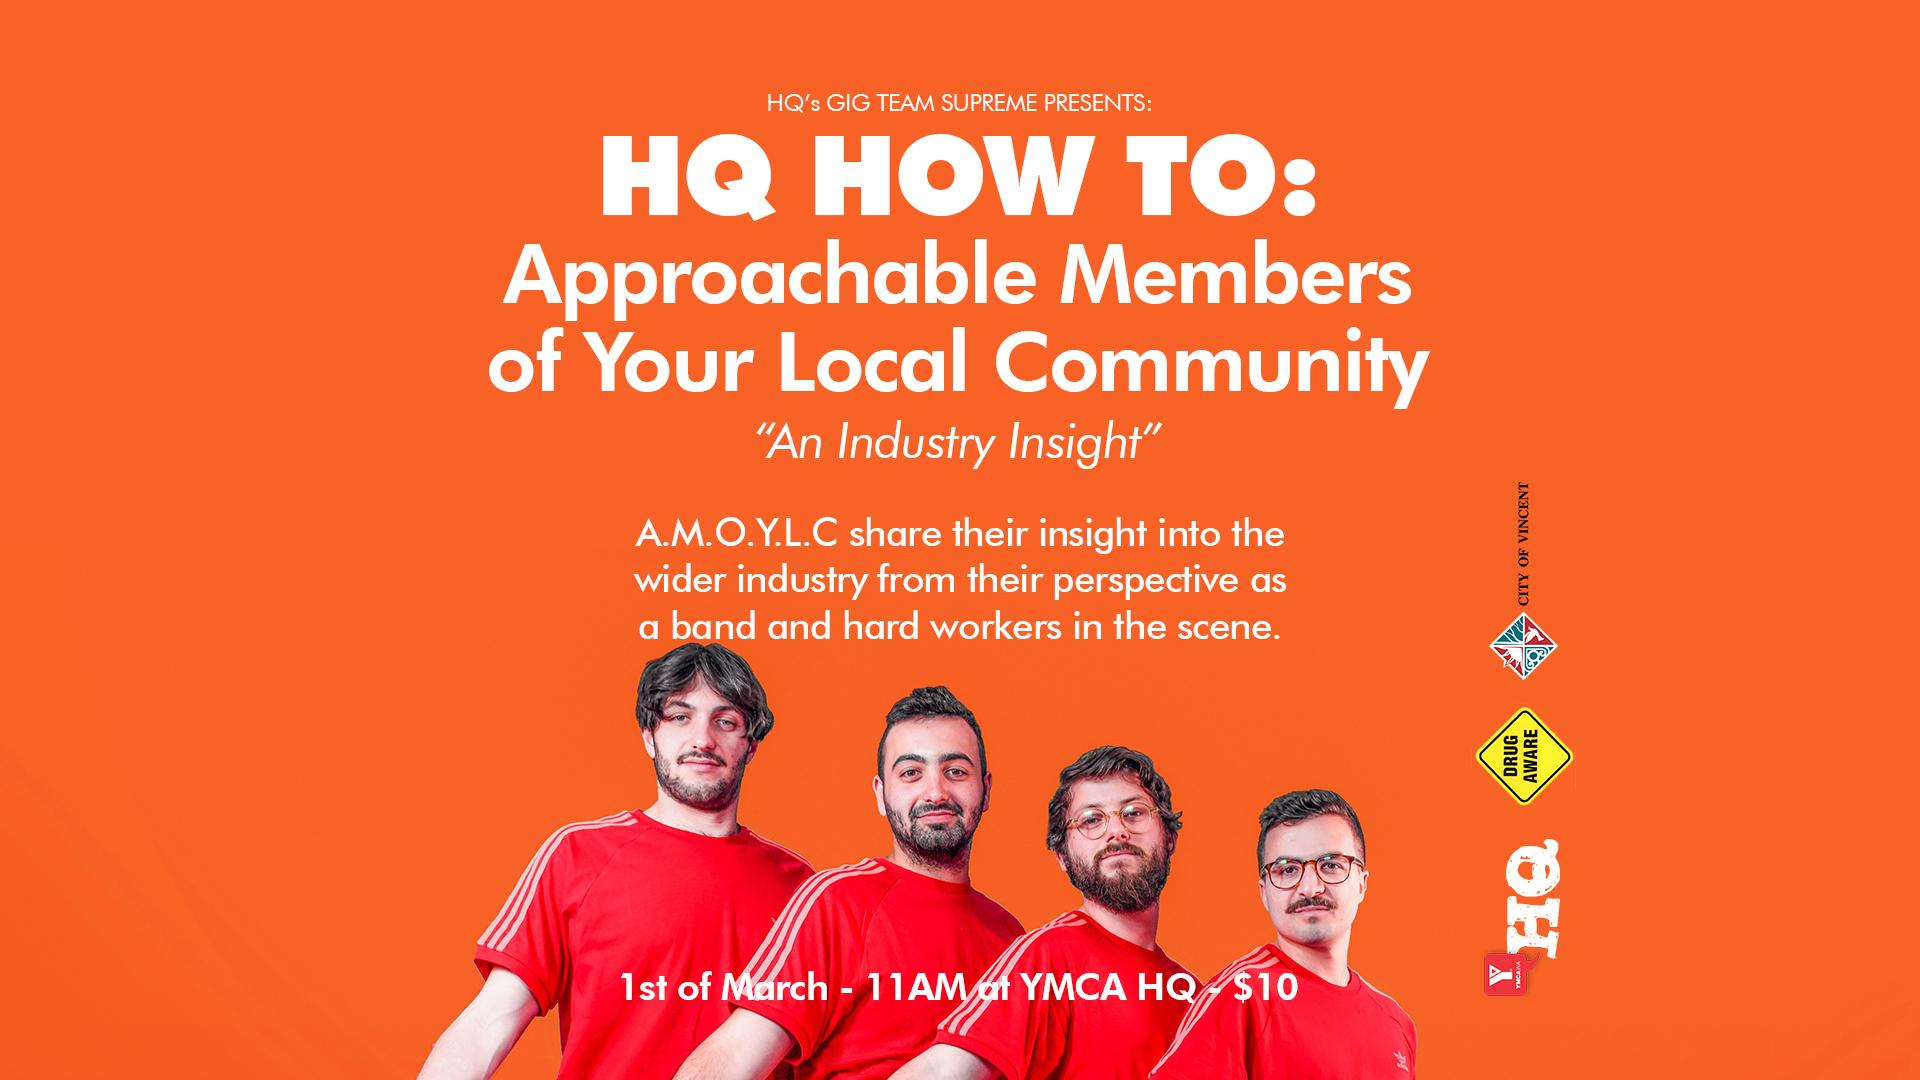 HQ HOW TO: Approachable Members of Your Local Community An Industry Insight